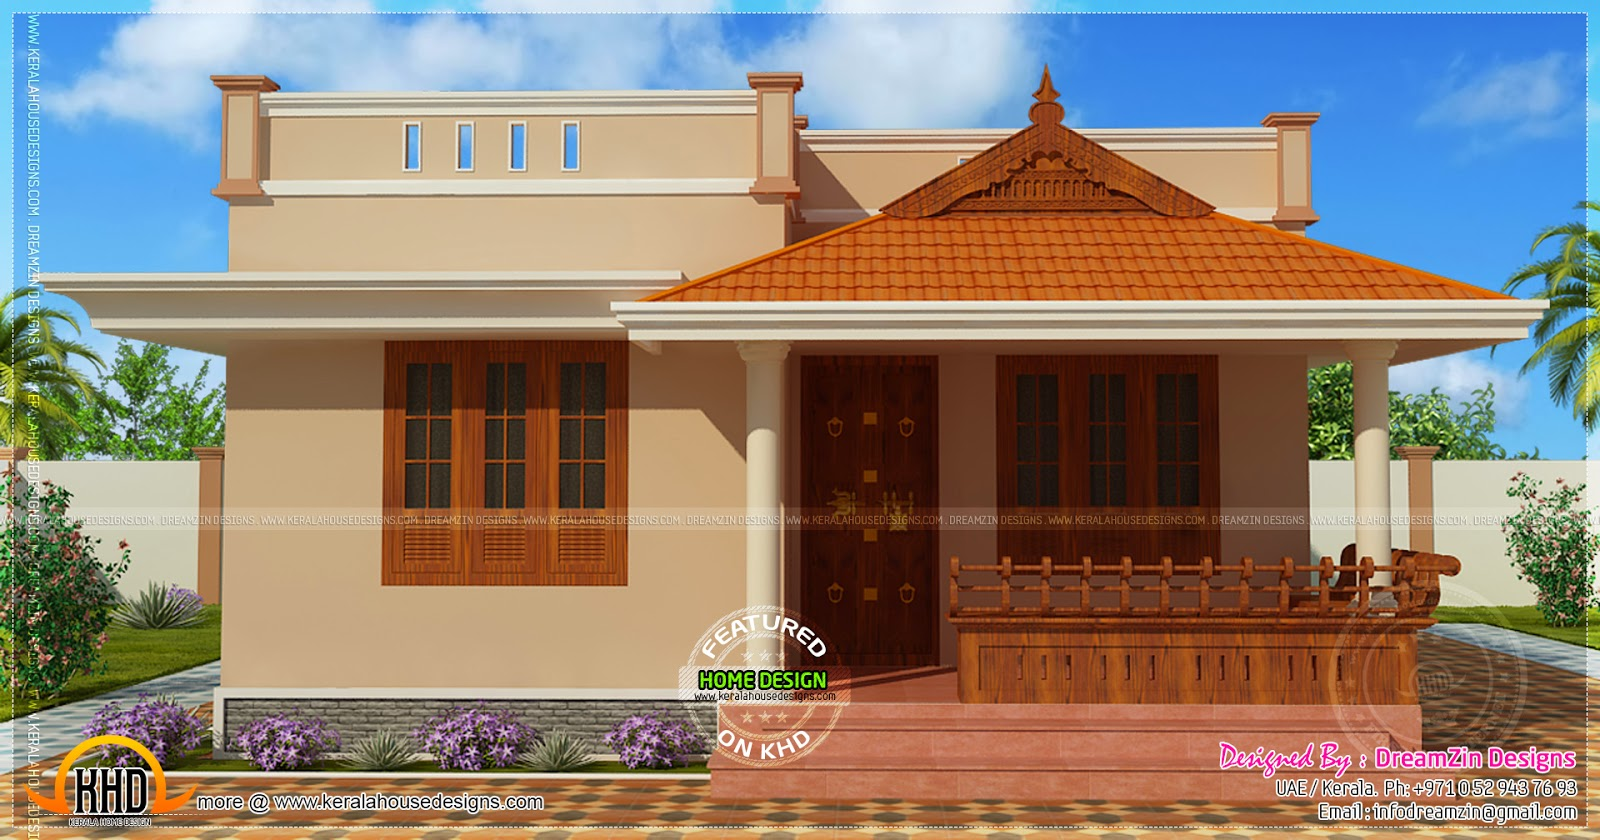 35 small and simple but beautiful house with roof deck for South indian small house designs